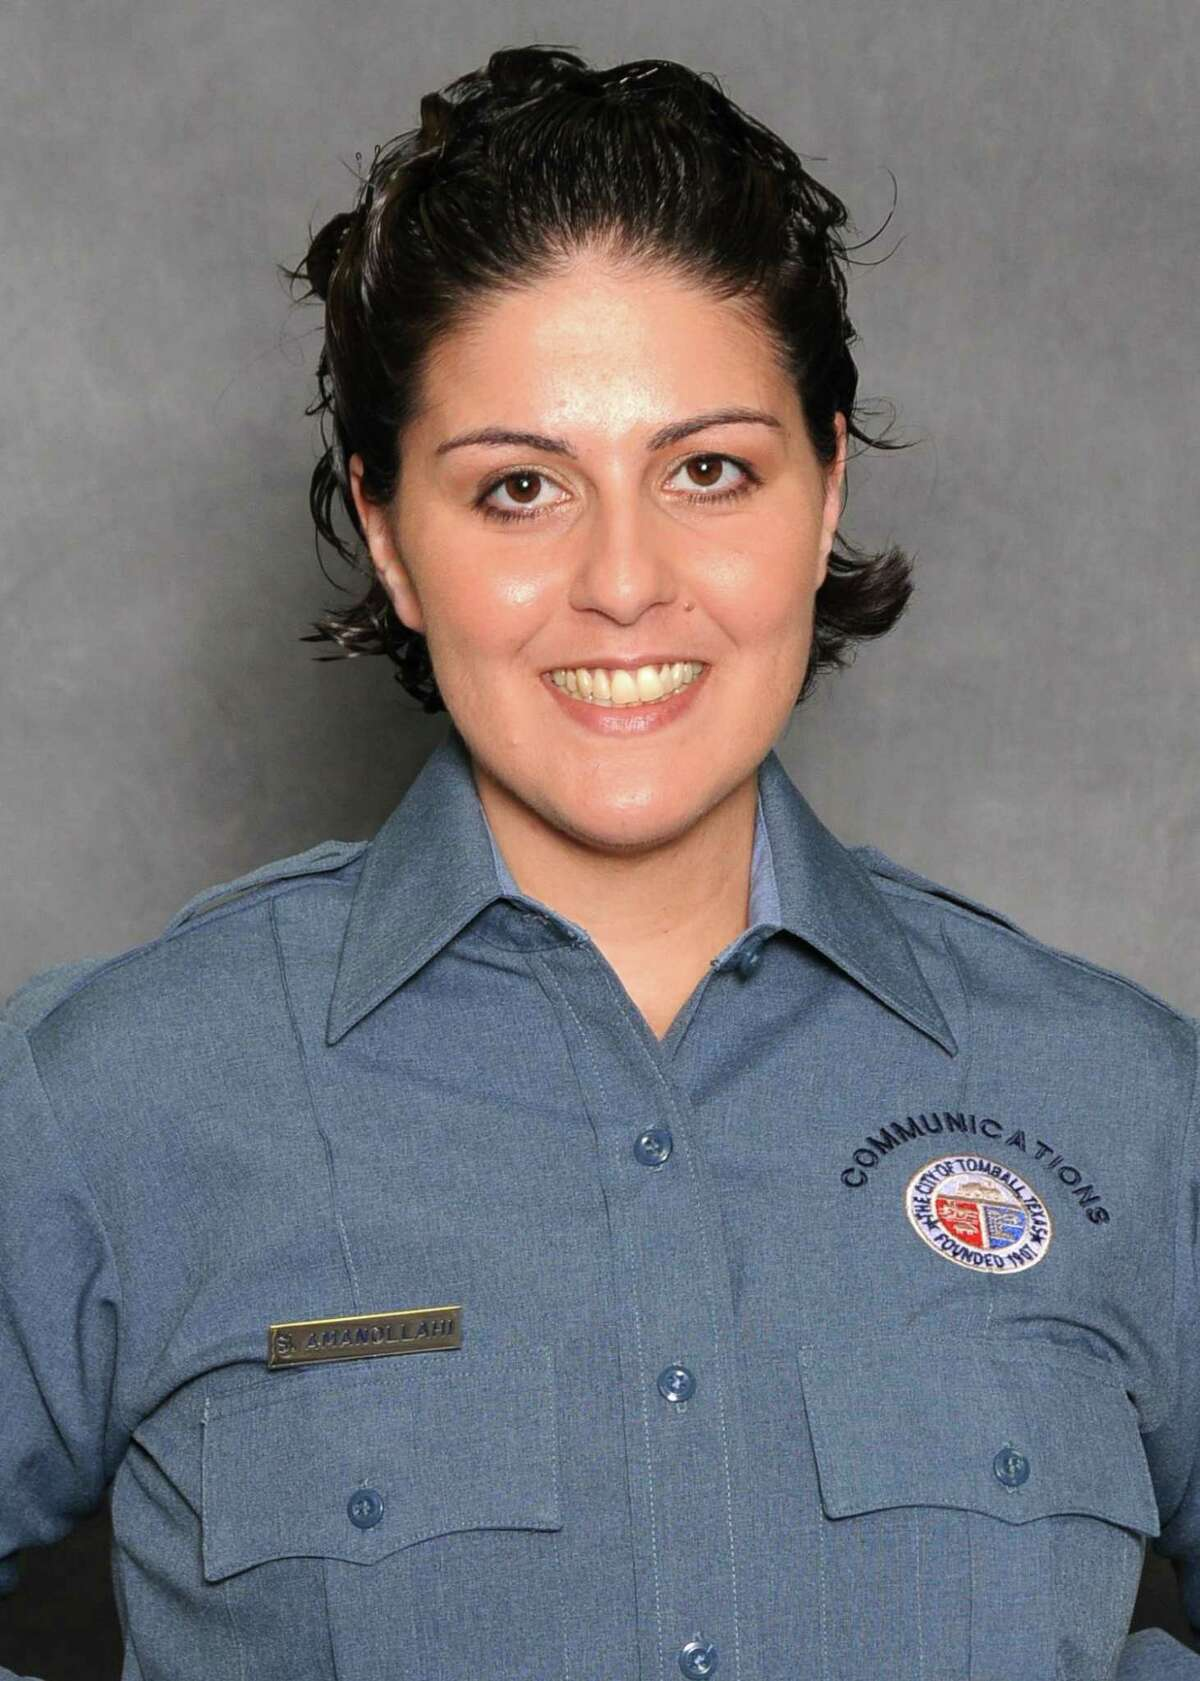 Paces4Pink is held in honor of Tomball Police Dispatcher Sherine Amanollahi, who died of breast cancer in 2012.